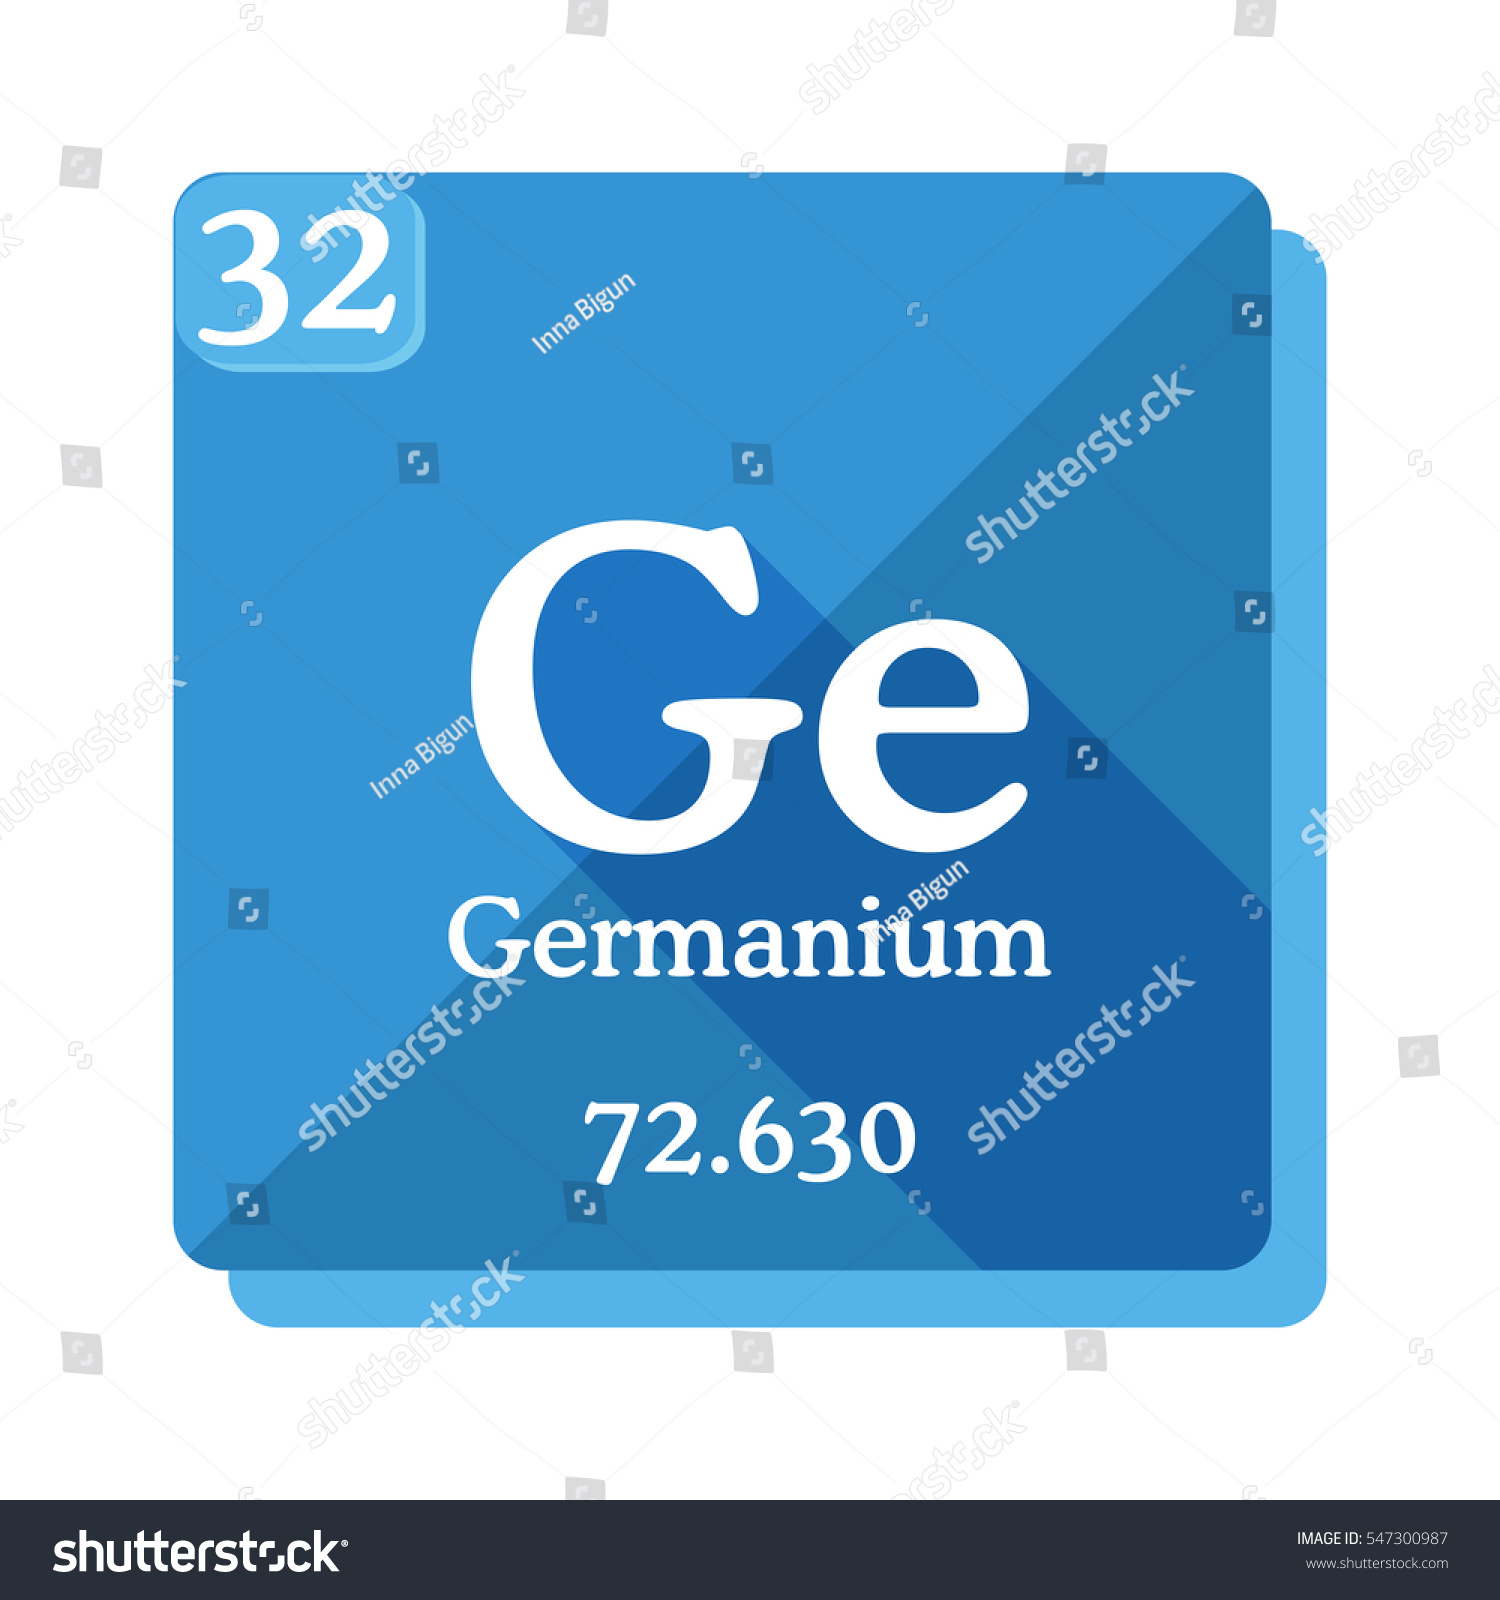 Germanium ge element periodic table flat stock vector 547300987 germanium ge element of the periodic table flat icon with long shadow gamestrikefo Image collections